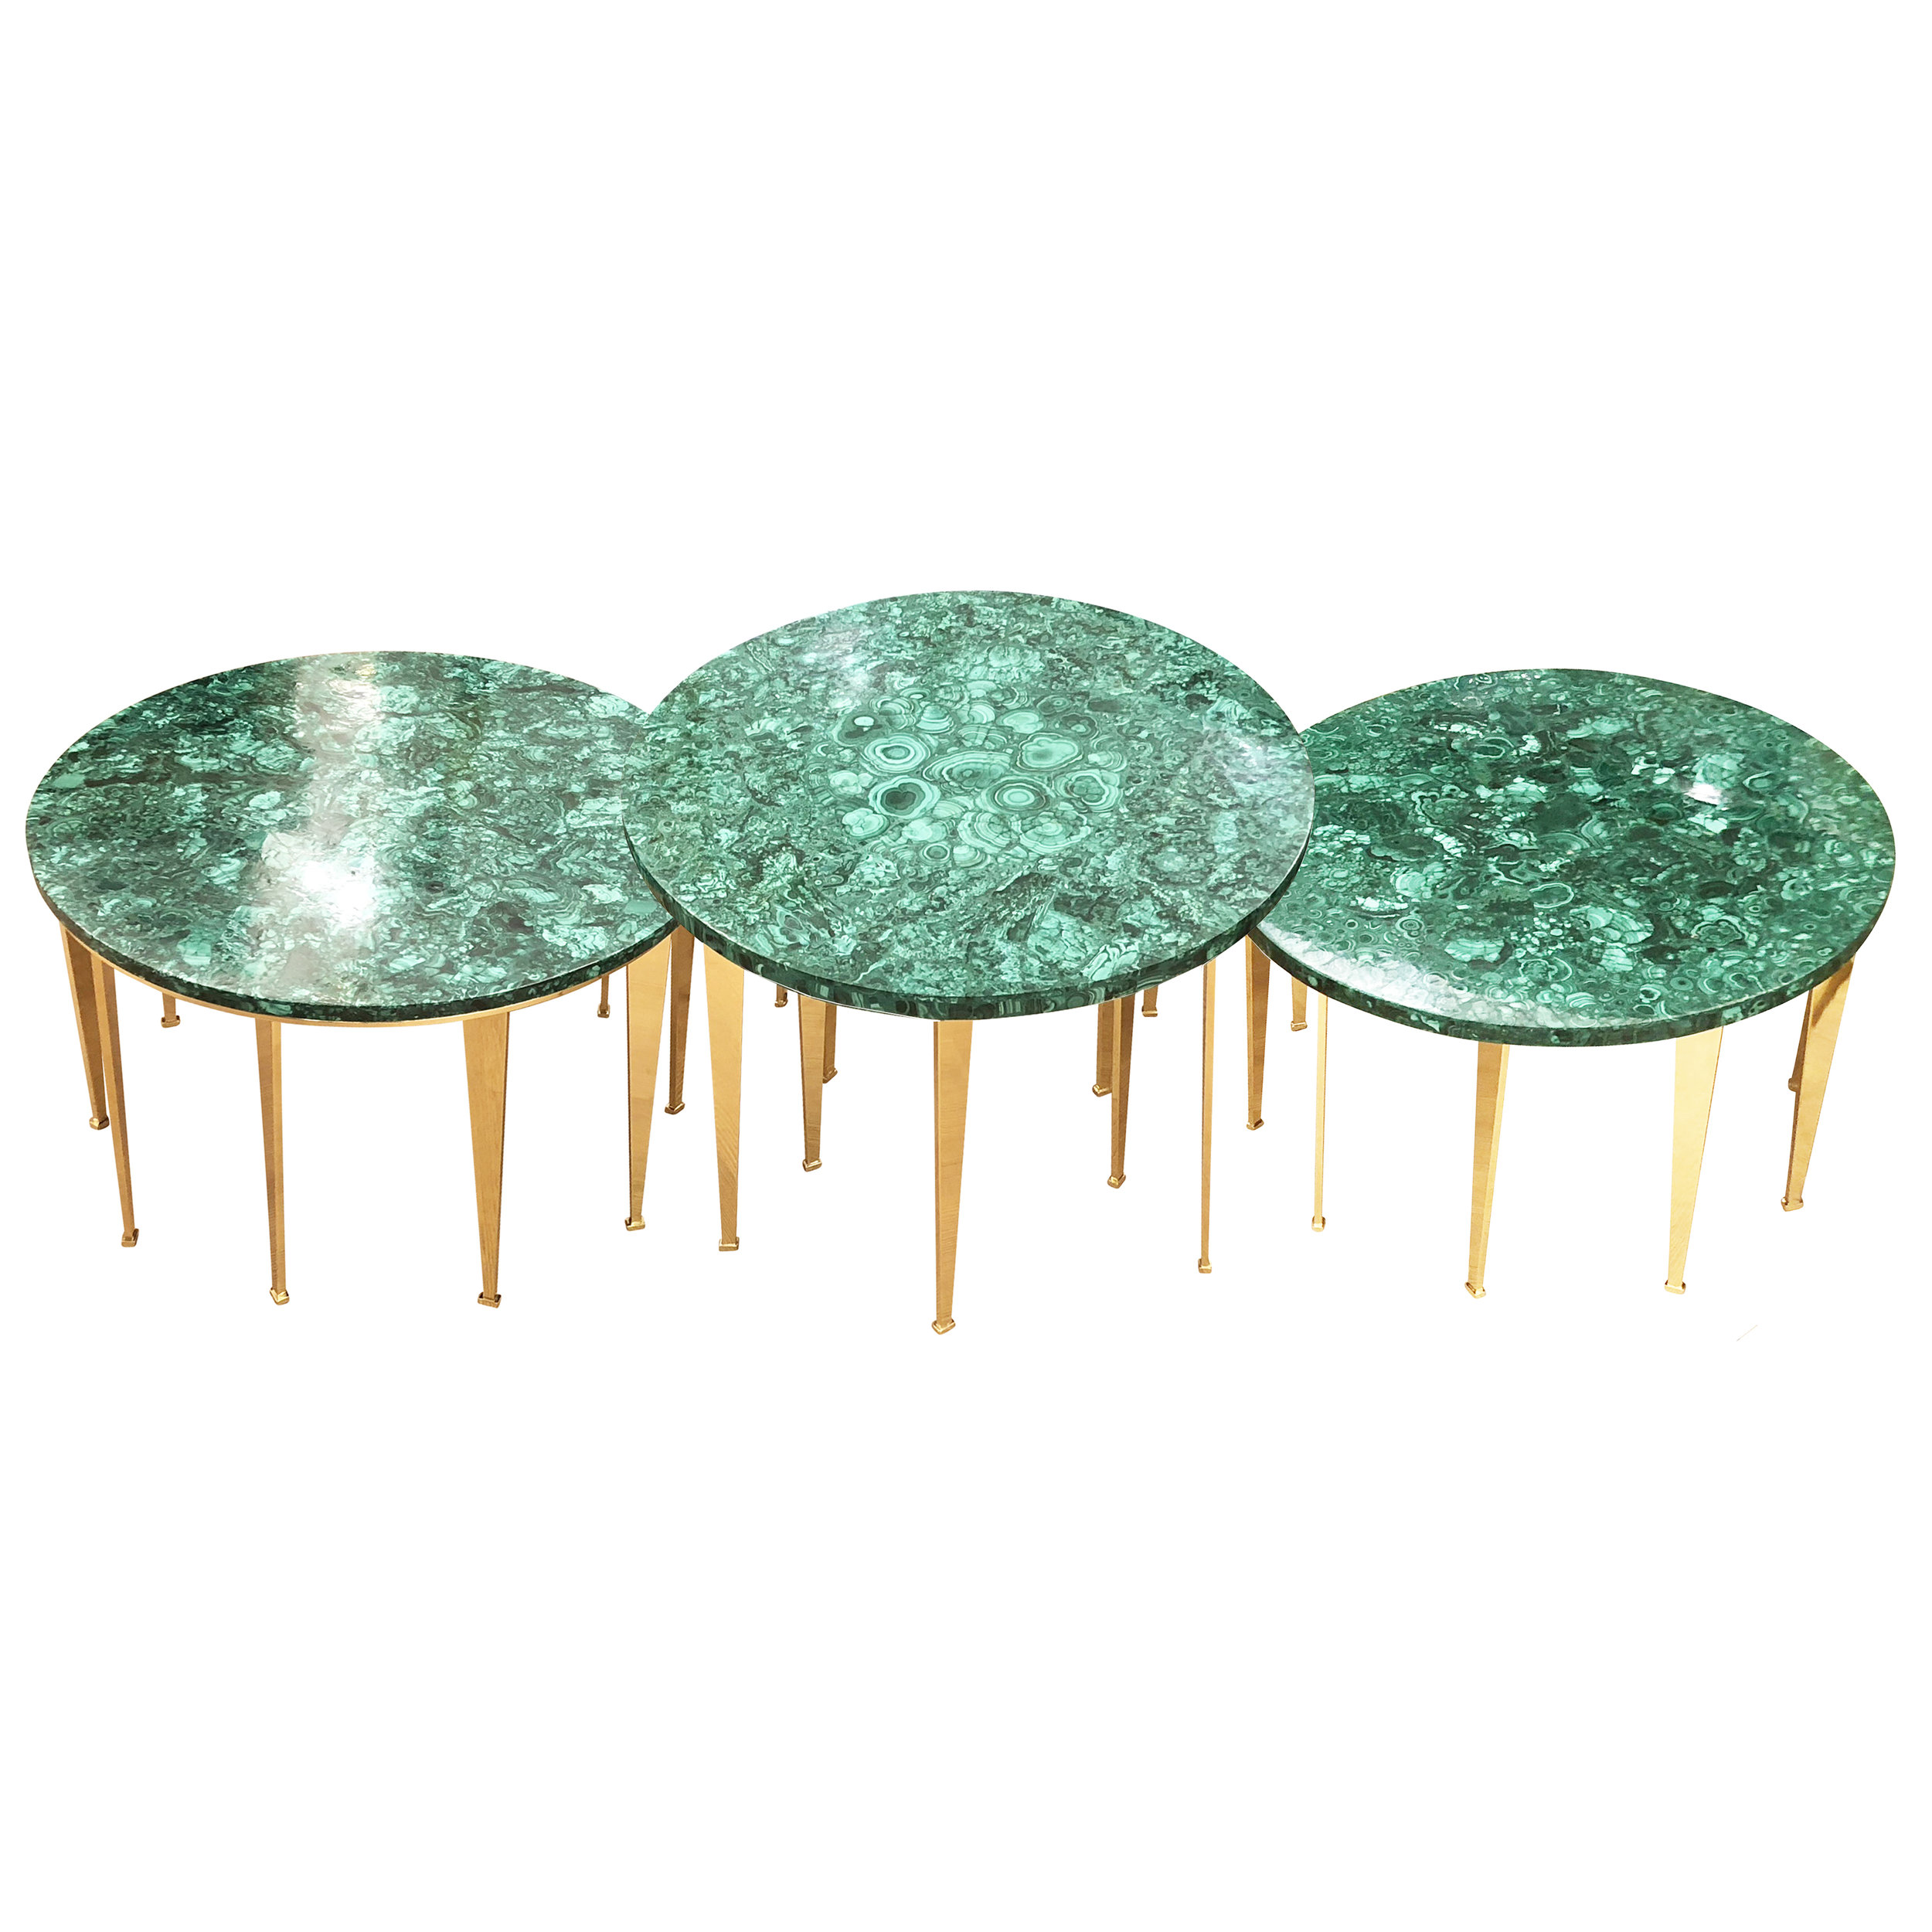 Limited Edition Malachite Coffee Table Or Side Tables Gaspare Asaro Italian Modern Mid Century Furniture And Lighting New York Ny